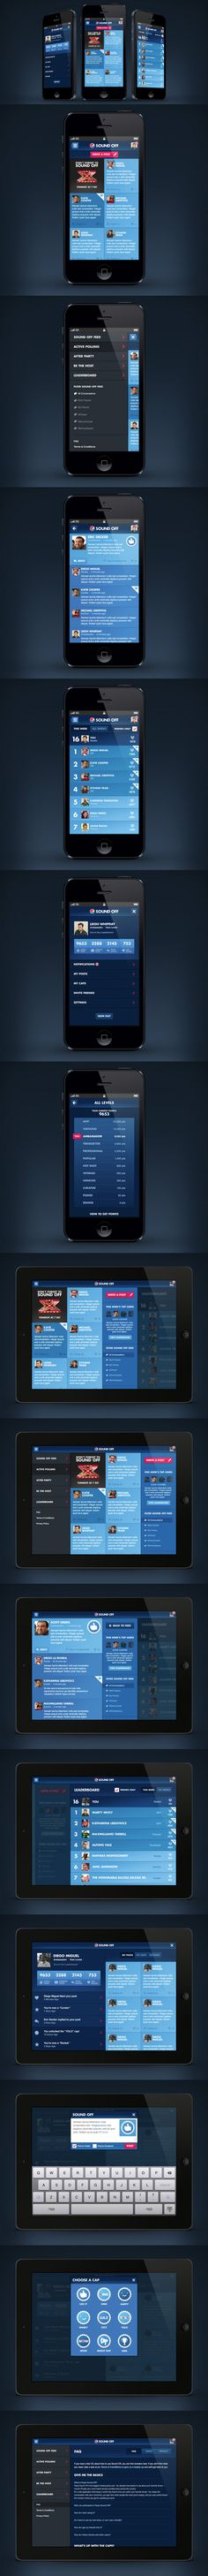 Pepsi Sound Off by Leigh Whipday, via Behance *** Pepsi wanted to evolve their Sound Off site into a second screen application for its community during live events and beyond. Initially launched for the X Factor, Sound Off is a flexible framework allowing specific components to be added for any live event to encourage fans to interact whilst watching.